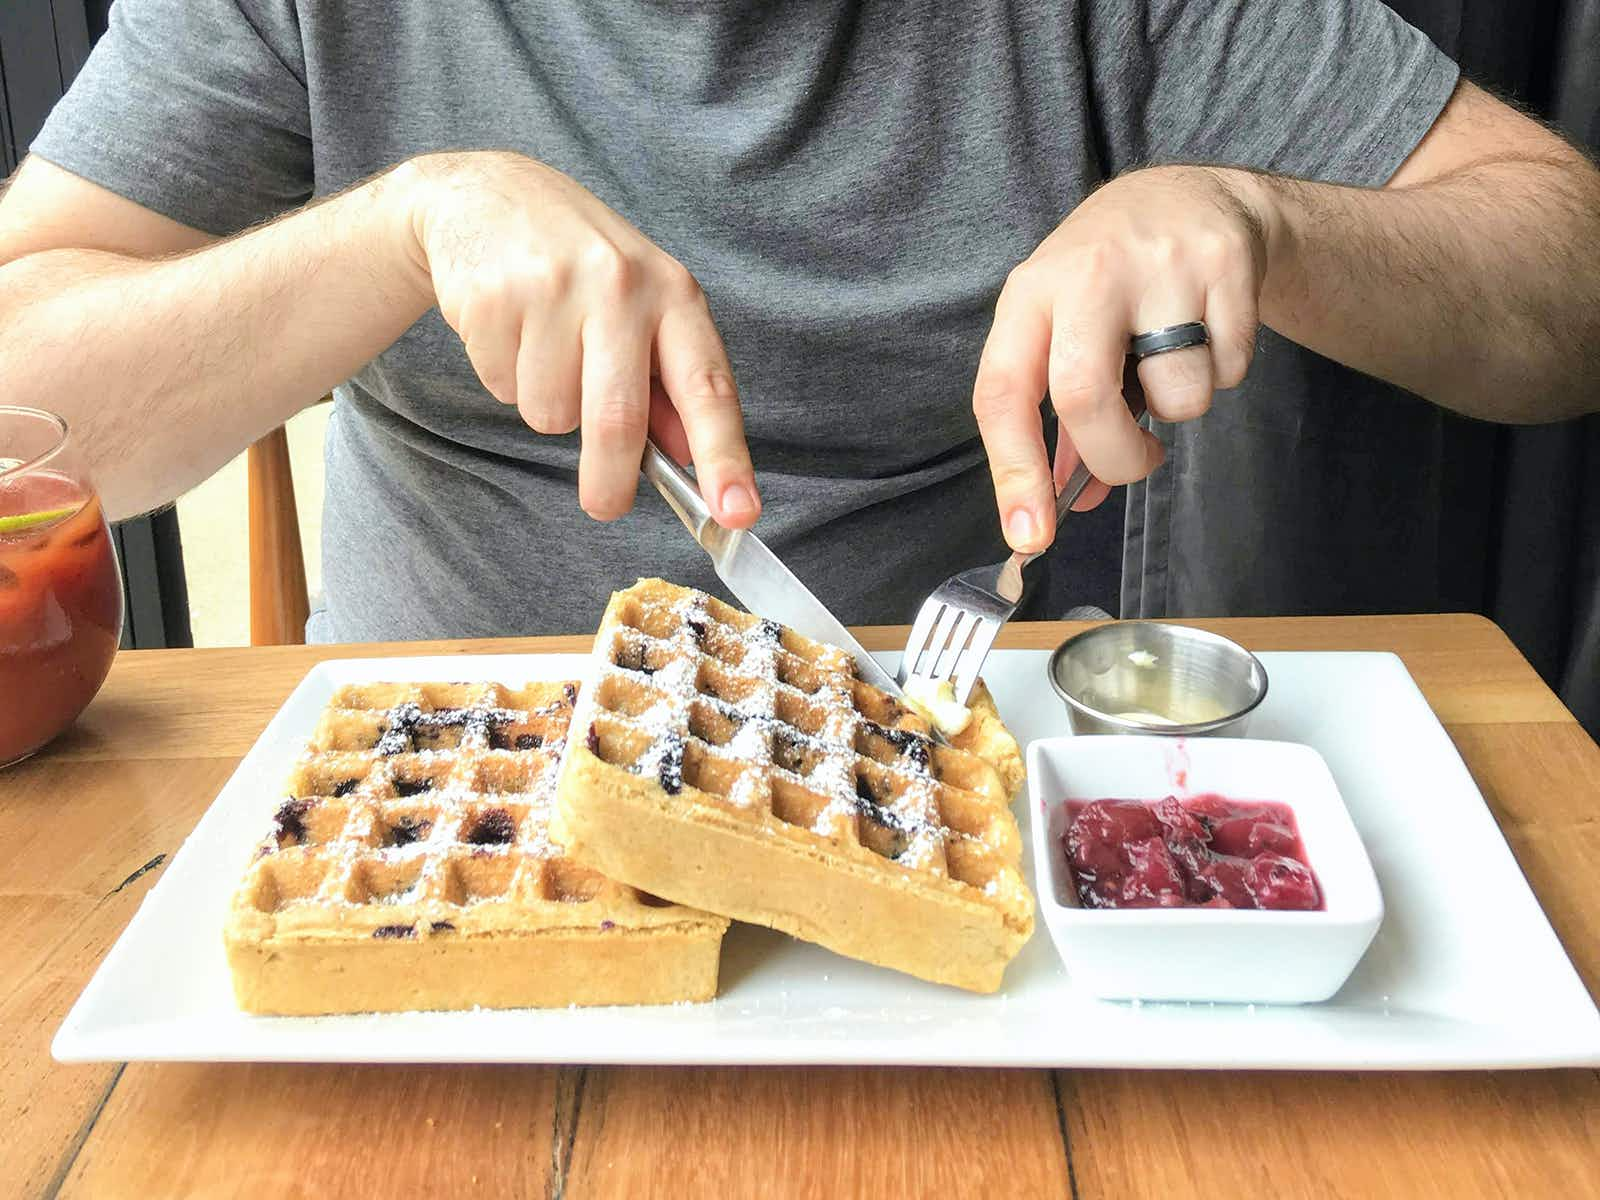 Dig in to gluten-free waffles at Wheat's End © Cate Huguelet / Lonely Planet